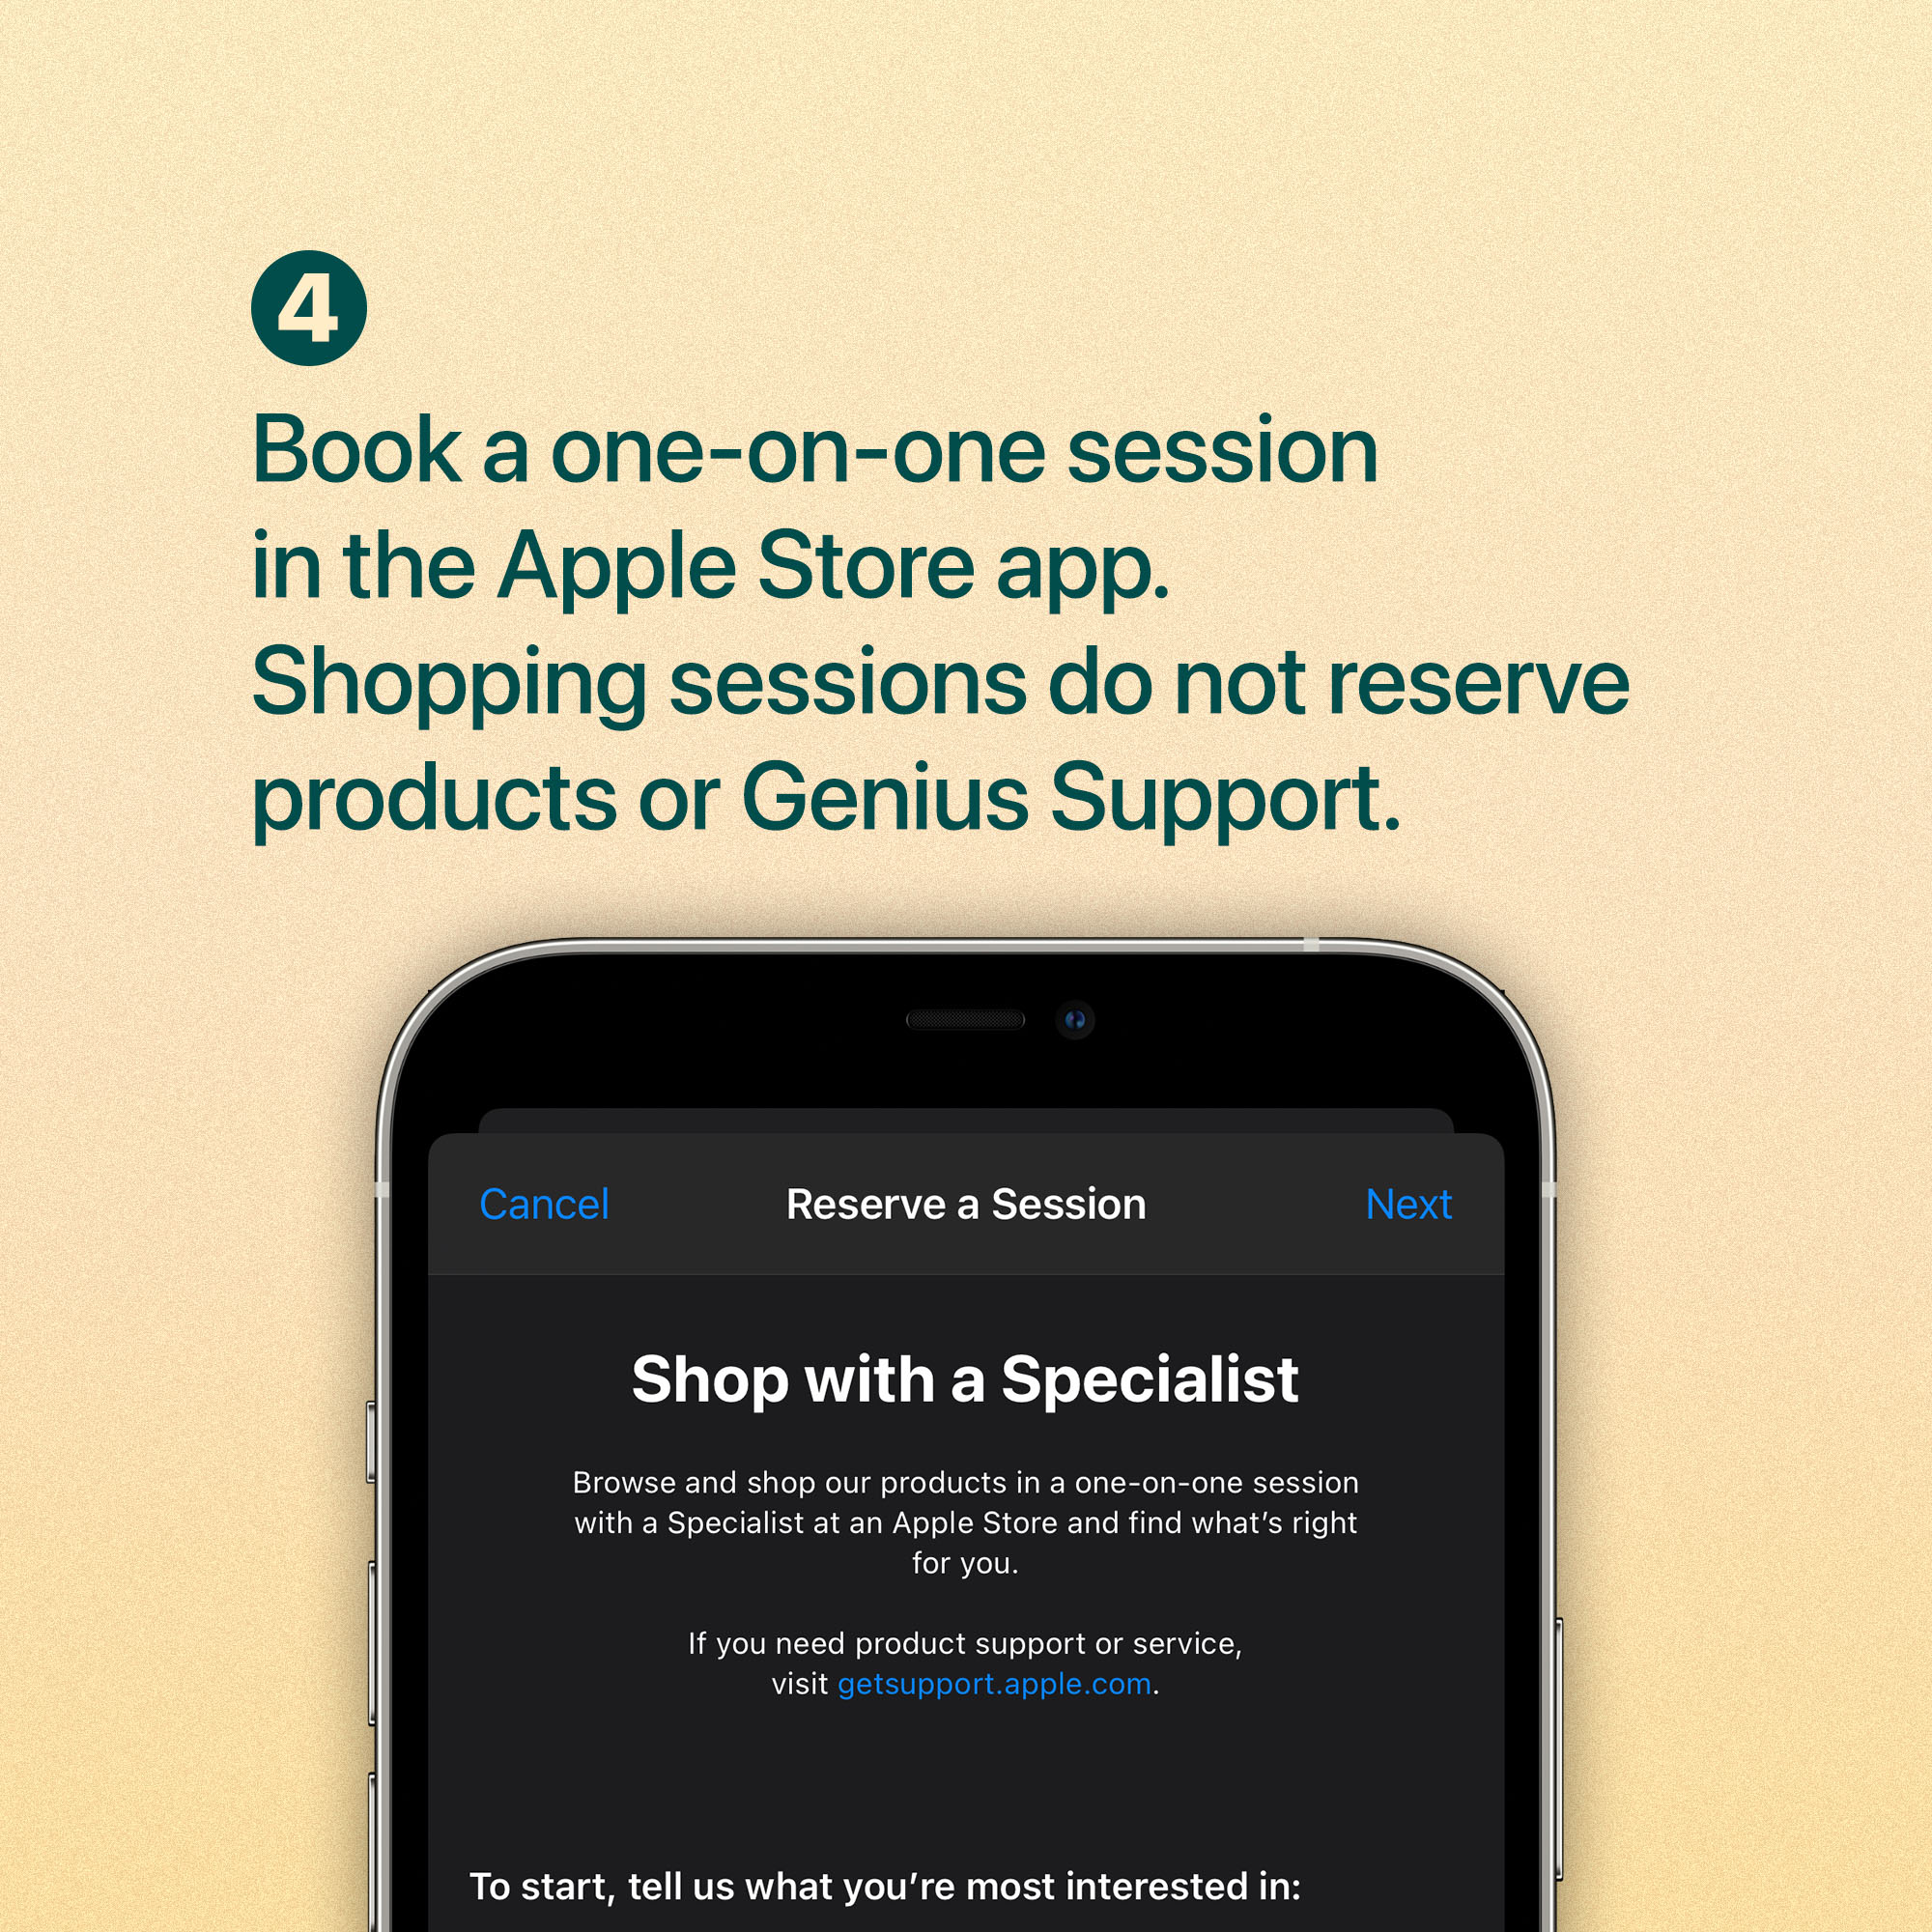 Book a one-on-one session in the Apple Store app. Shopping sessions do not reserve products or Genius Support.